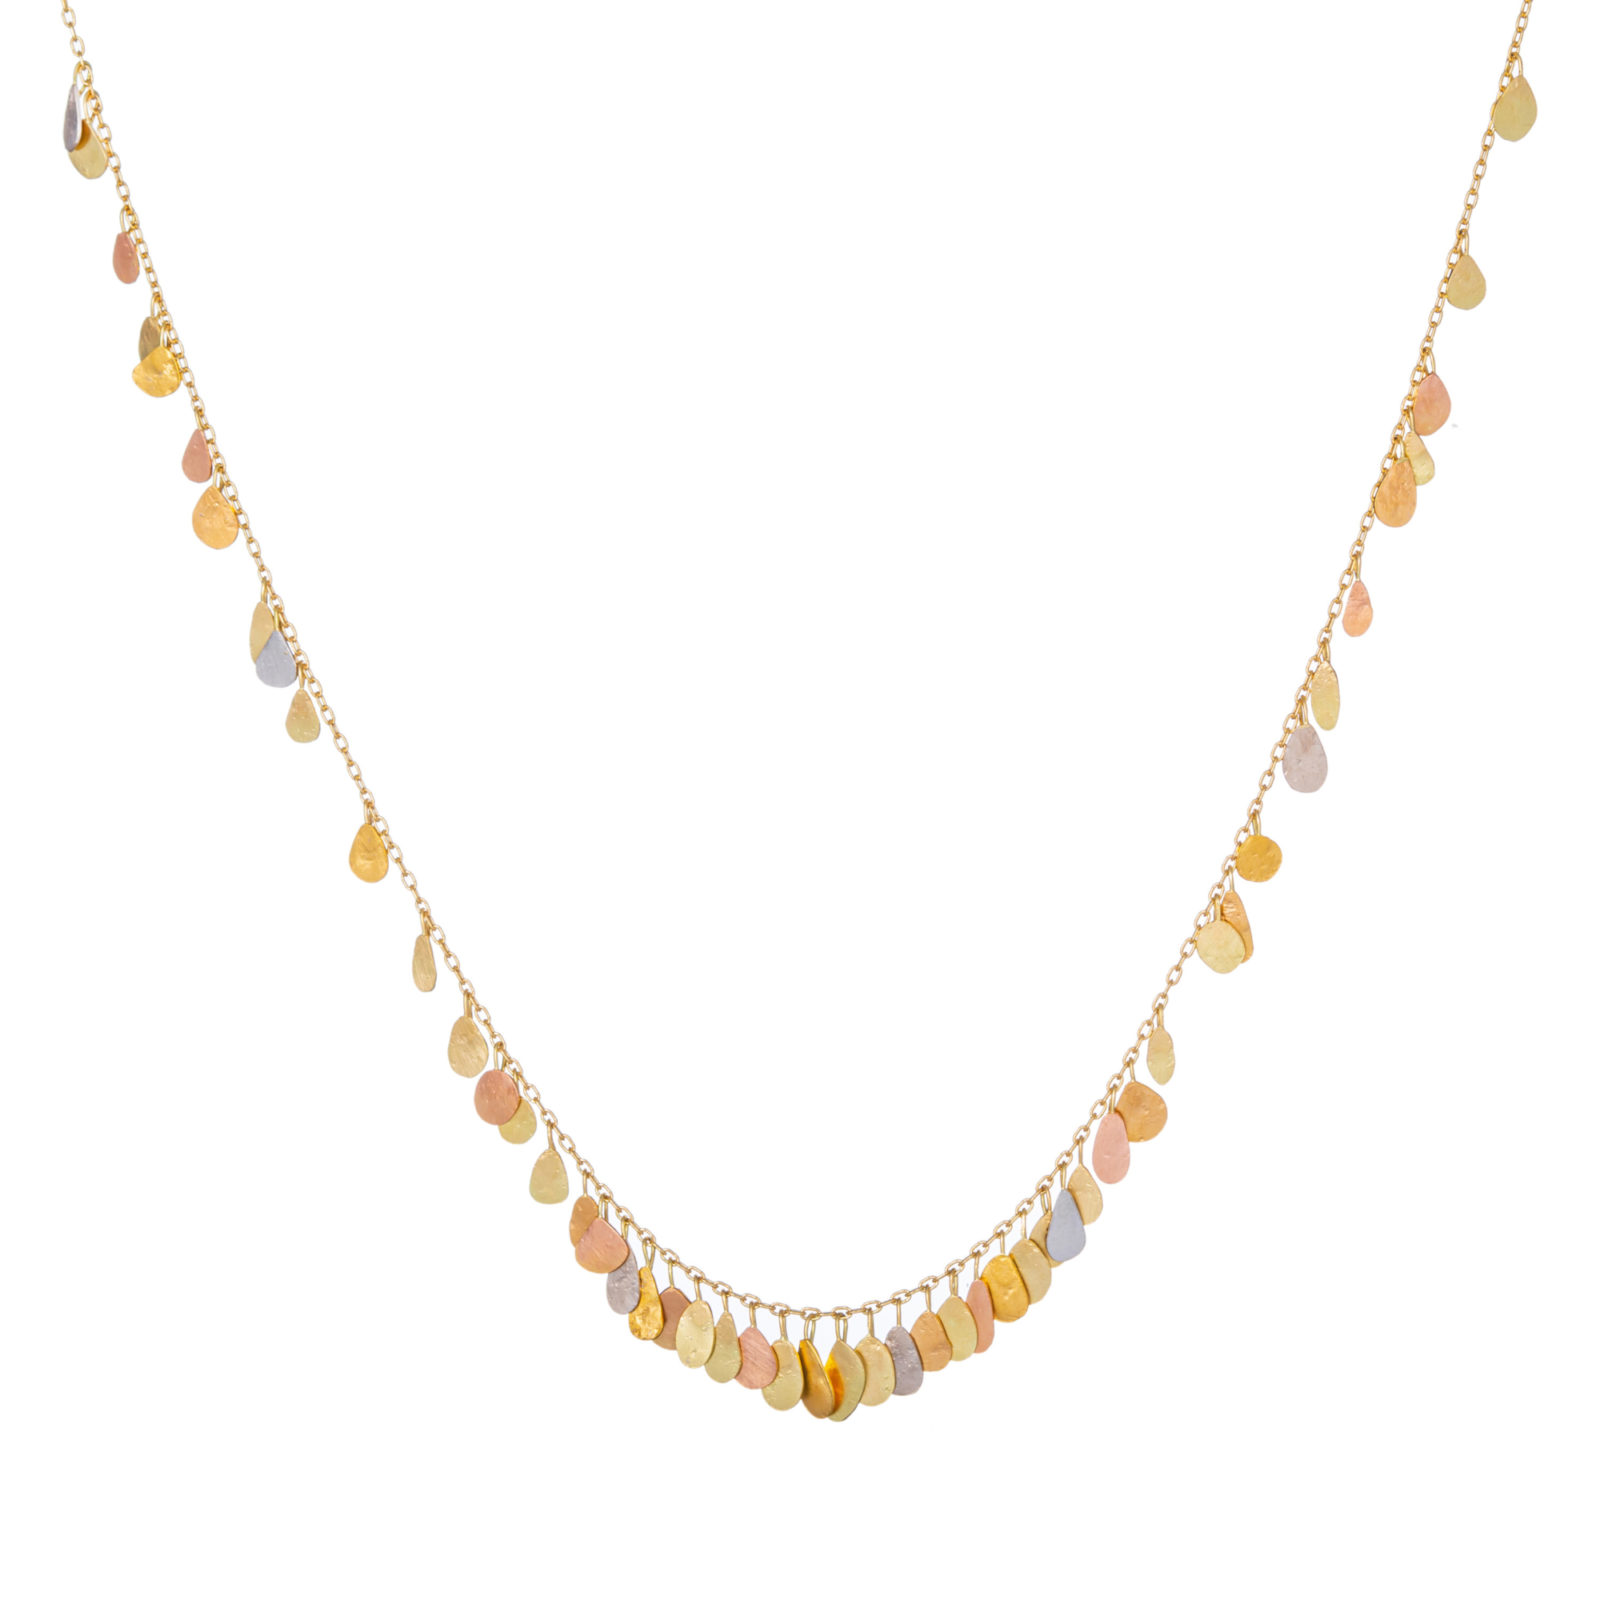 Sia Taylor TN1 YMIX Raindrop Gold Necklace WB